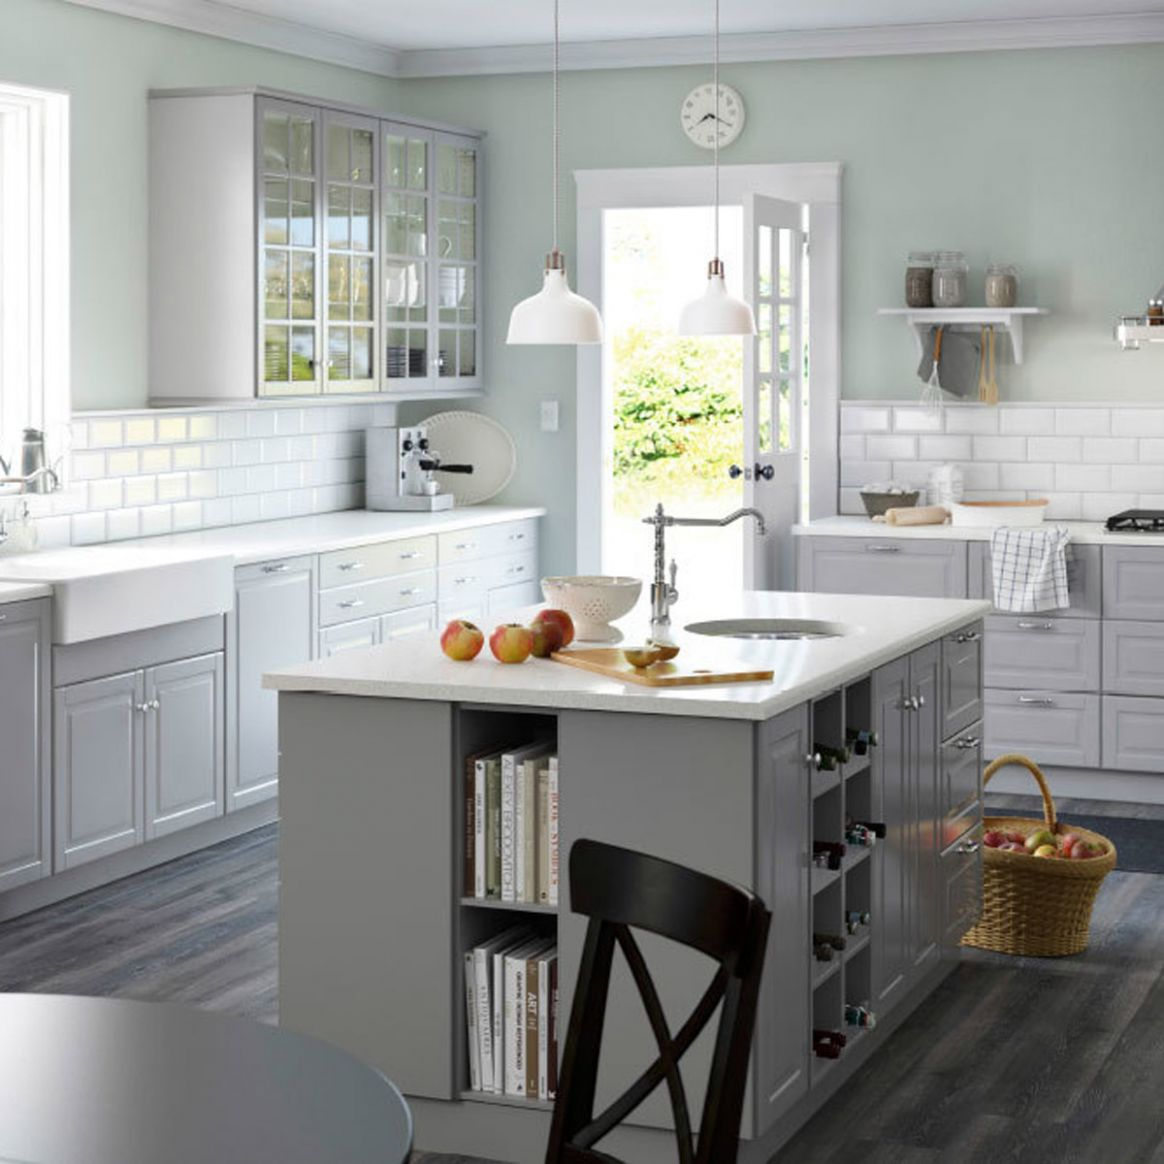 8 Inspiring Kitchen Island Ideas — The Family Handyman - kitchen ideas island